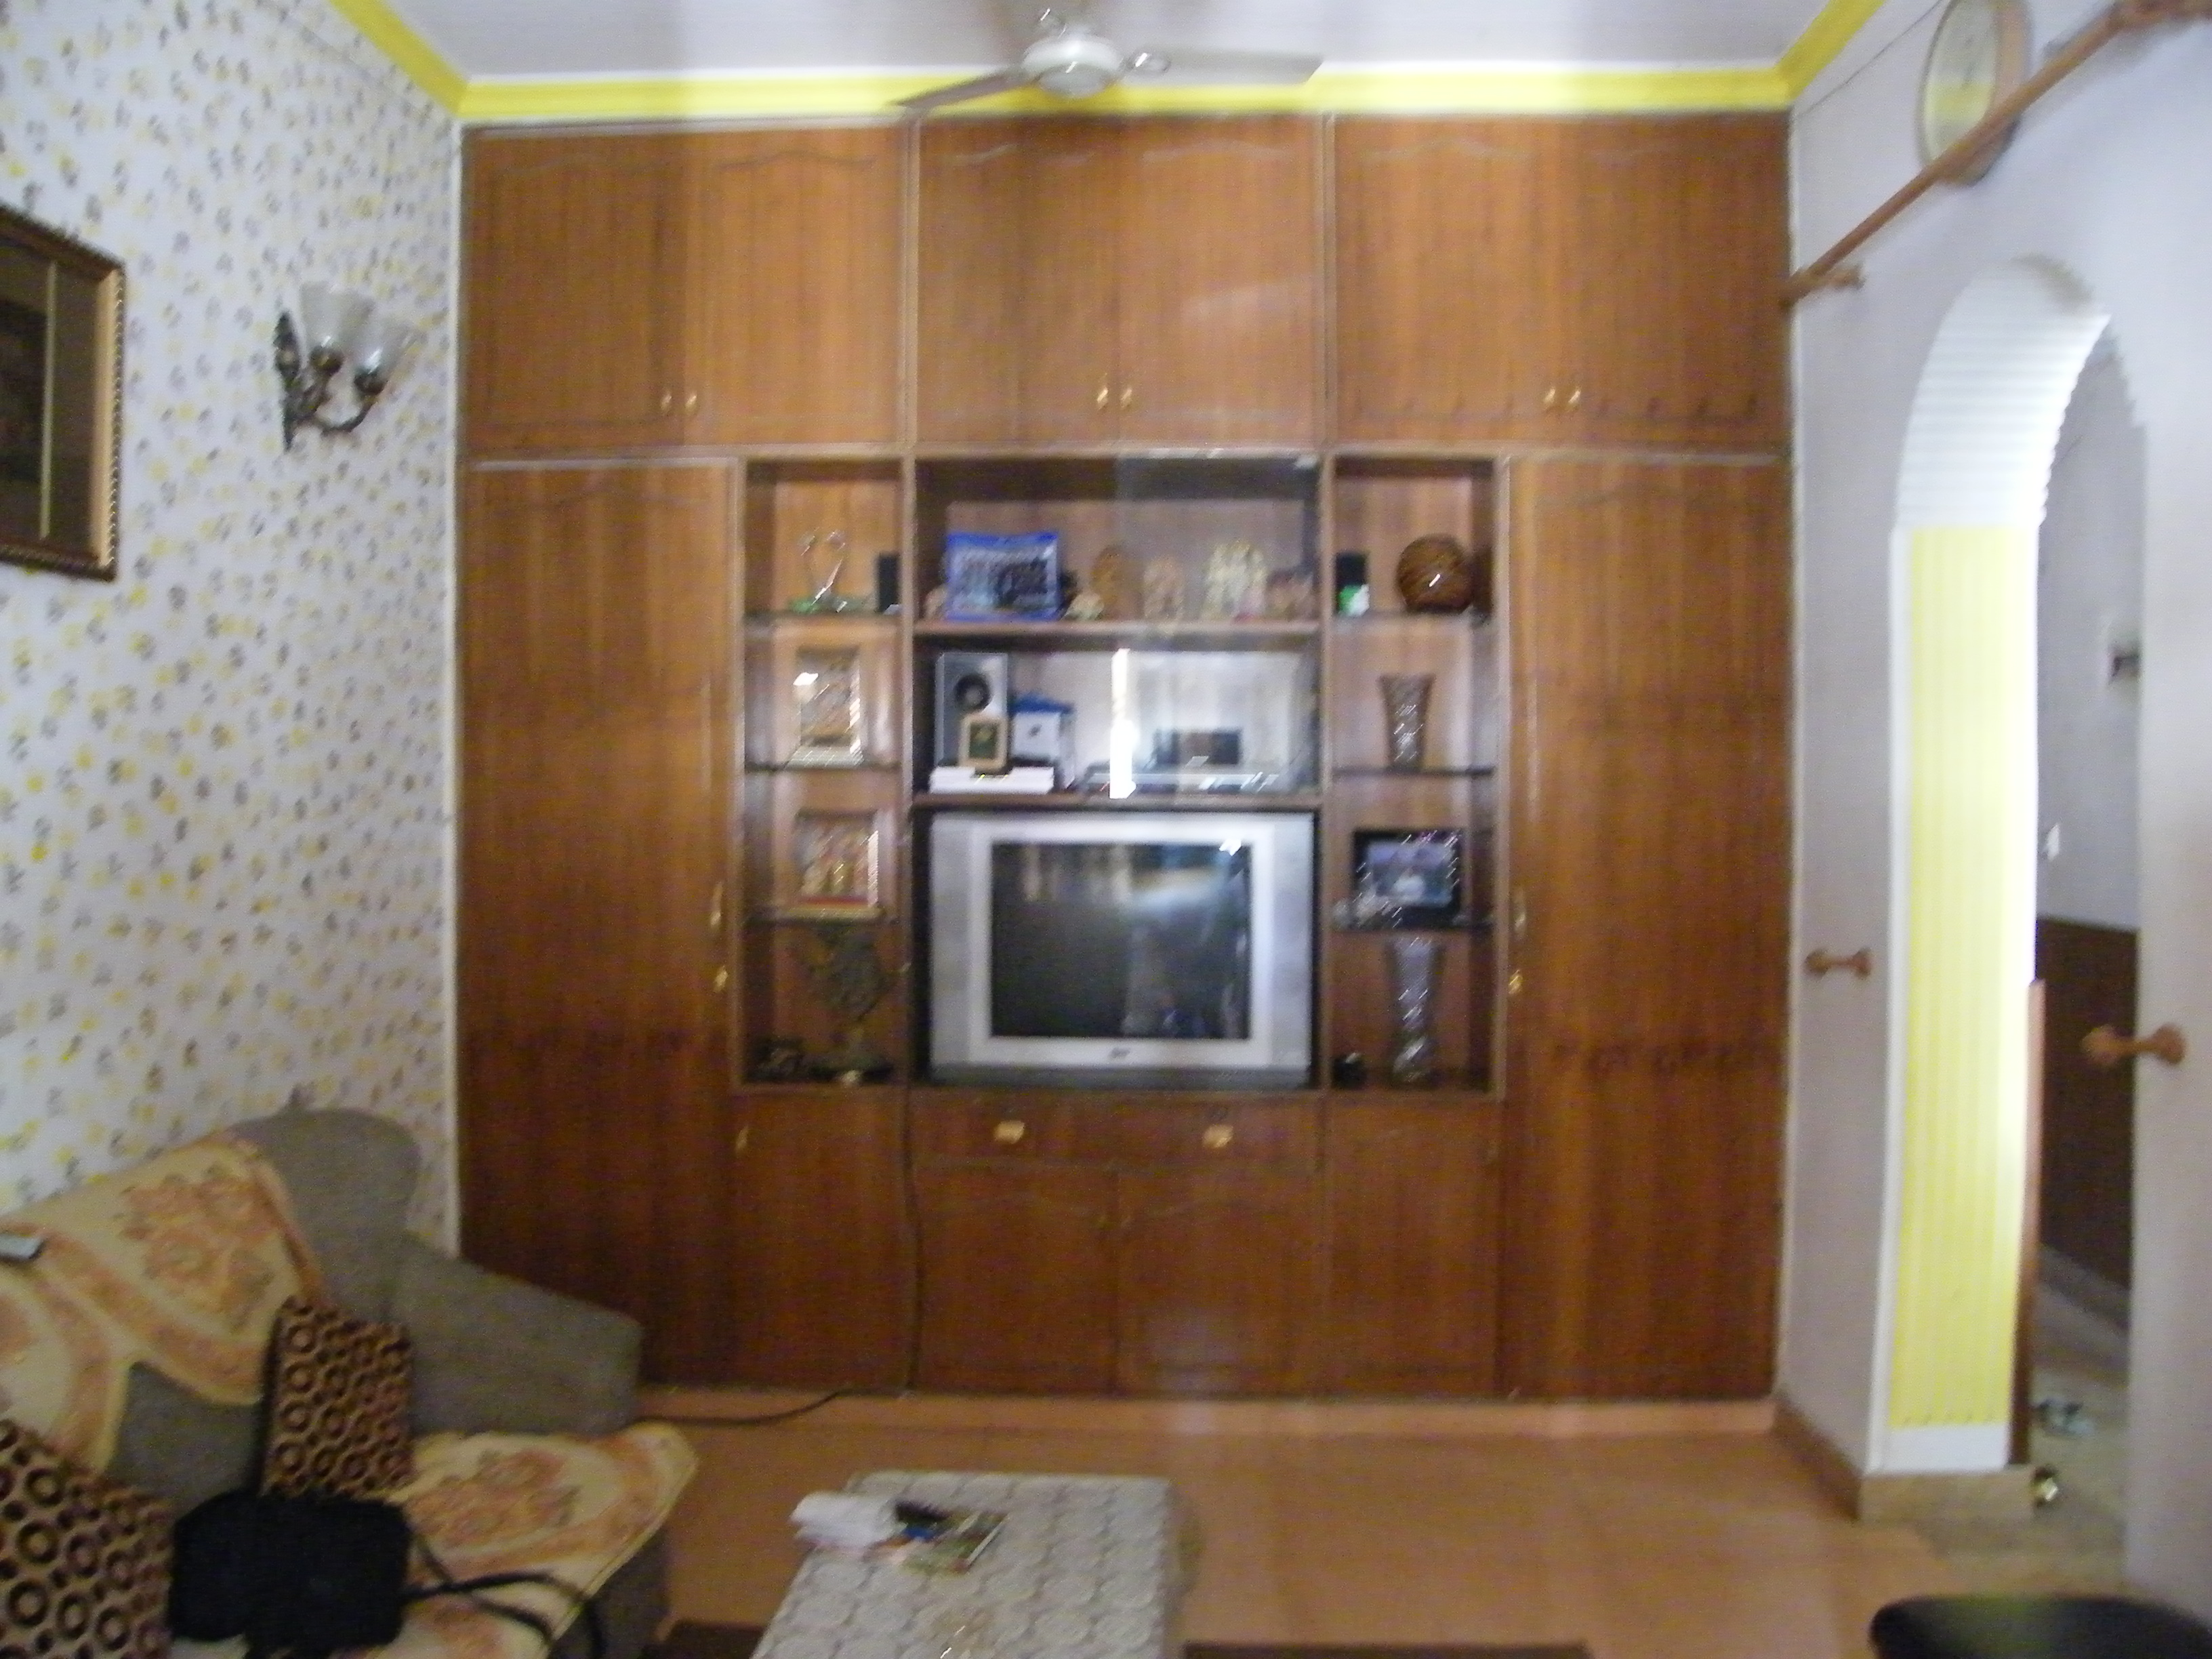 2 Bhk Interior Designs | 2 Bhk Interior Design Ideas, Decoration Images